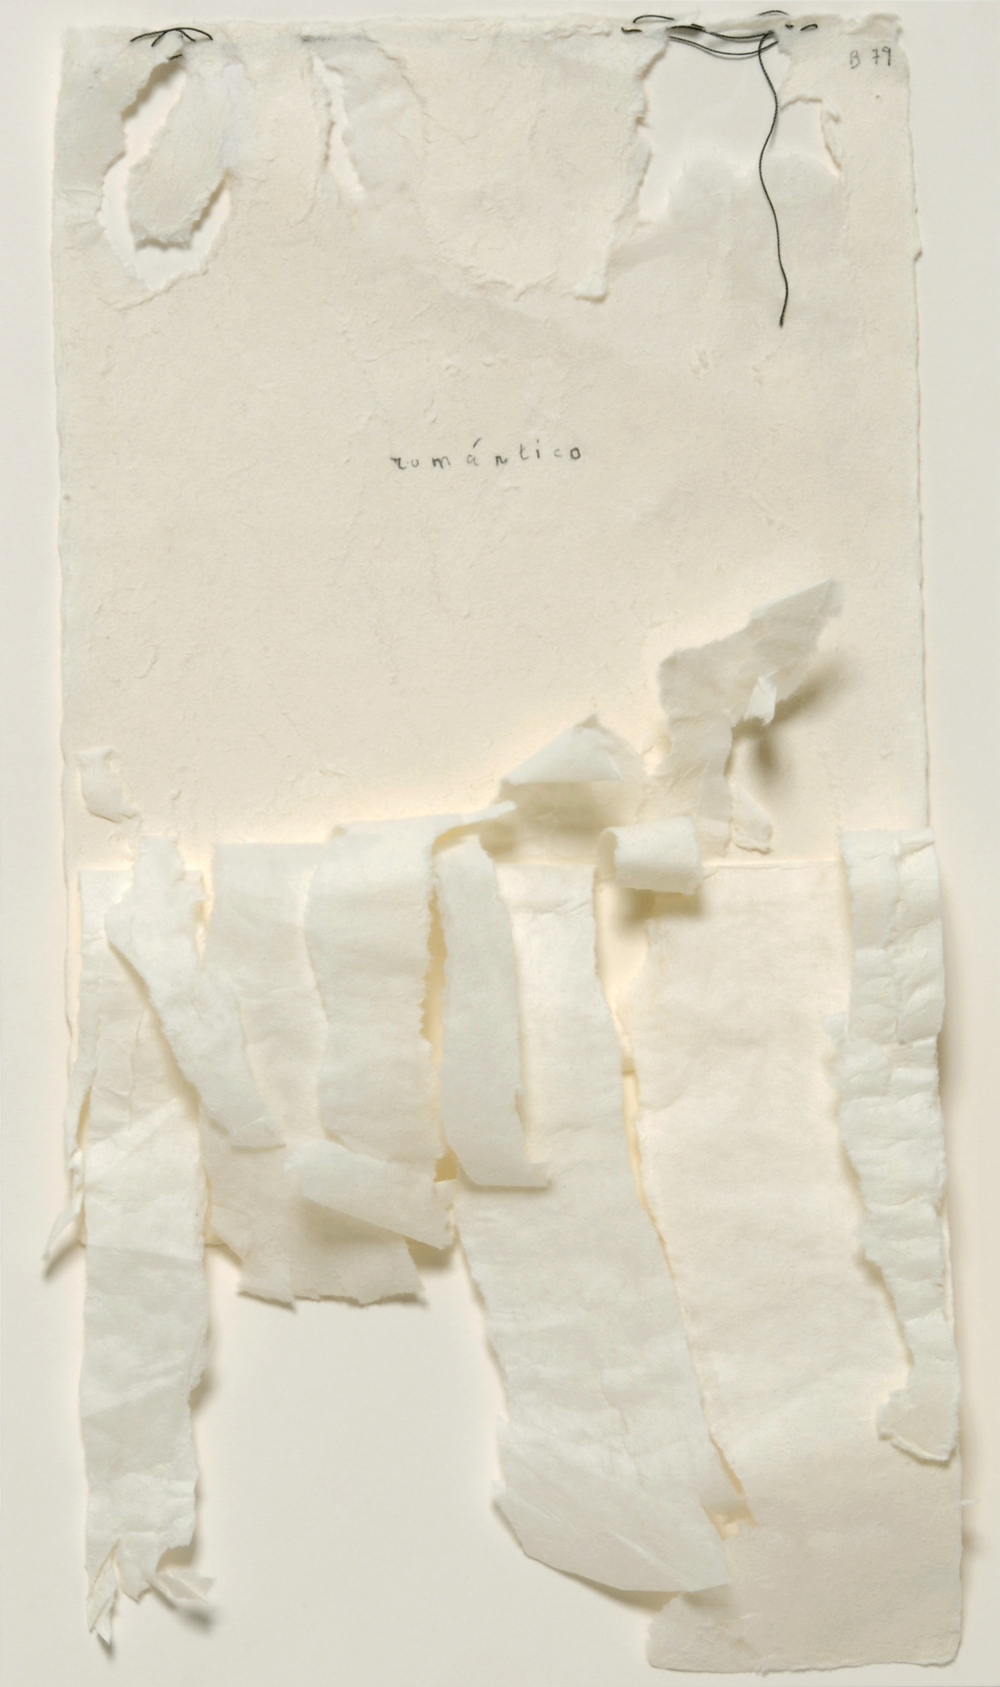 L'Amour Propre, 2005, torn paper, graphite and thread, 40 x 23 cms